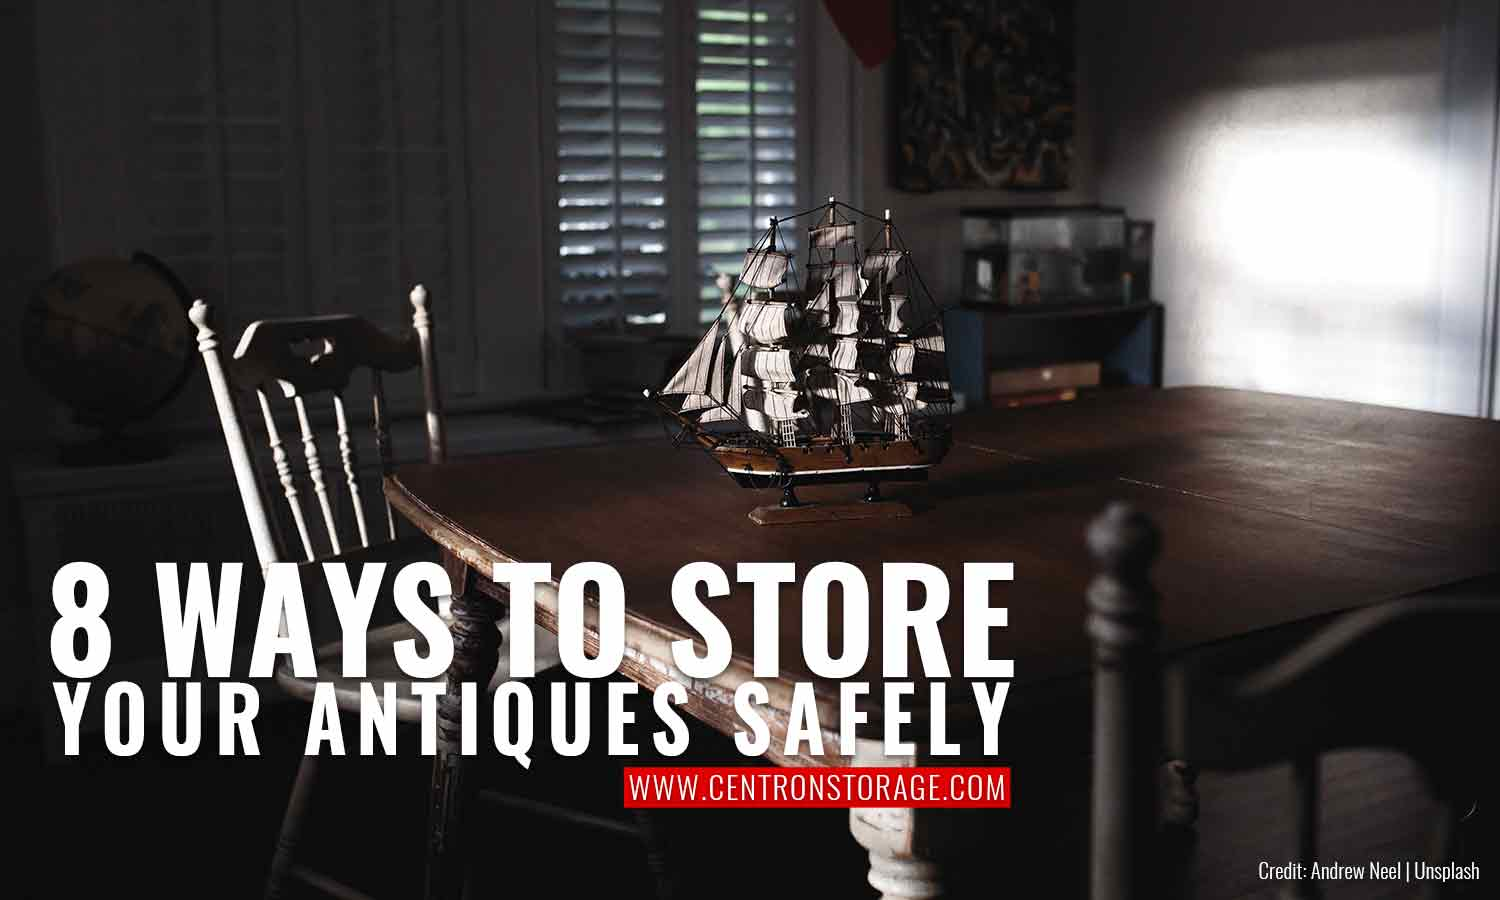 8 Ways to Store Your Antiques Safely